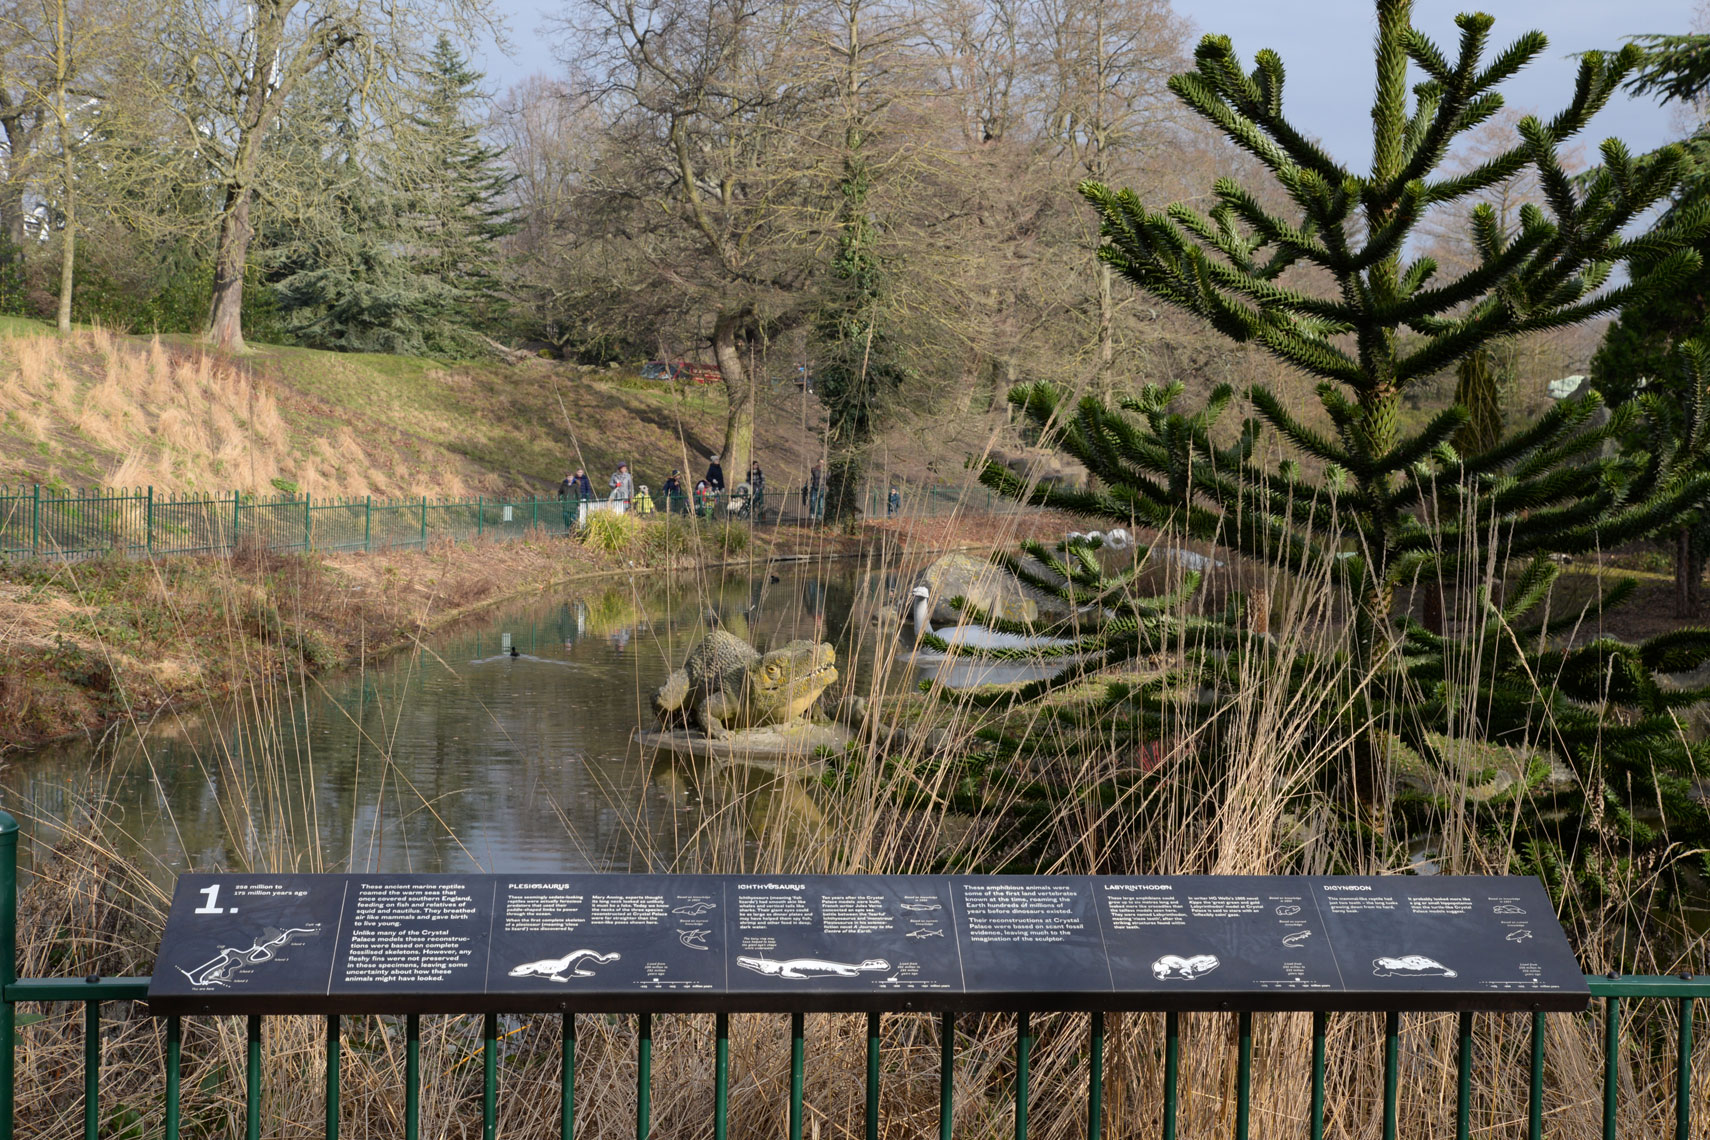 Crystal Palace Dinosaurs, London Borough of Bromley